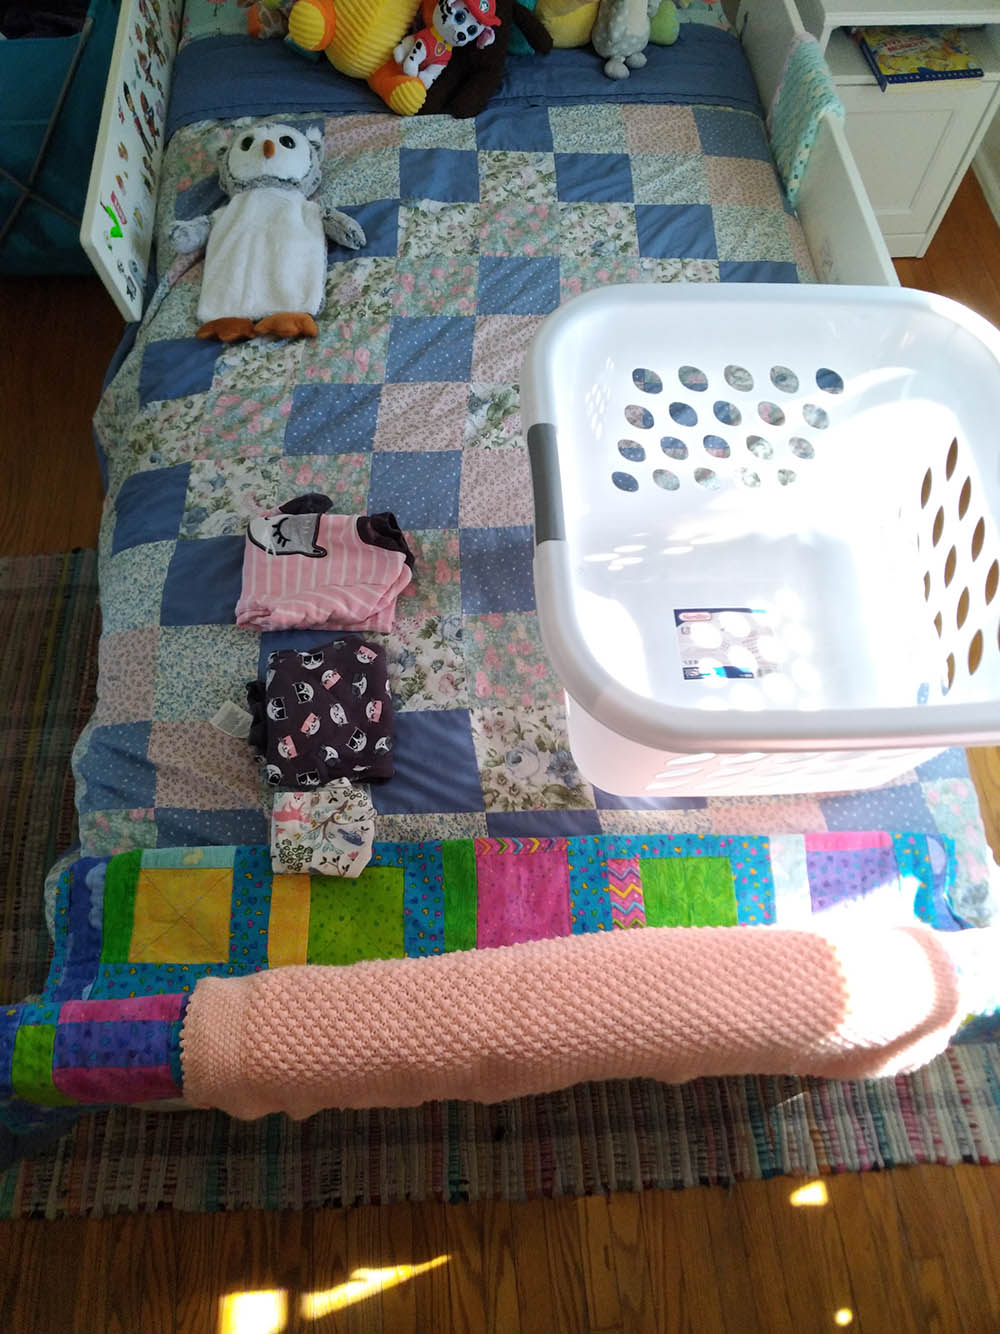 All this bedding was in the laundry and she even folded Molly's clothes using the Kon Mari method!